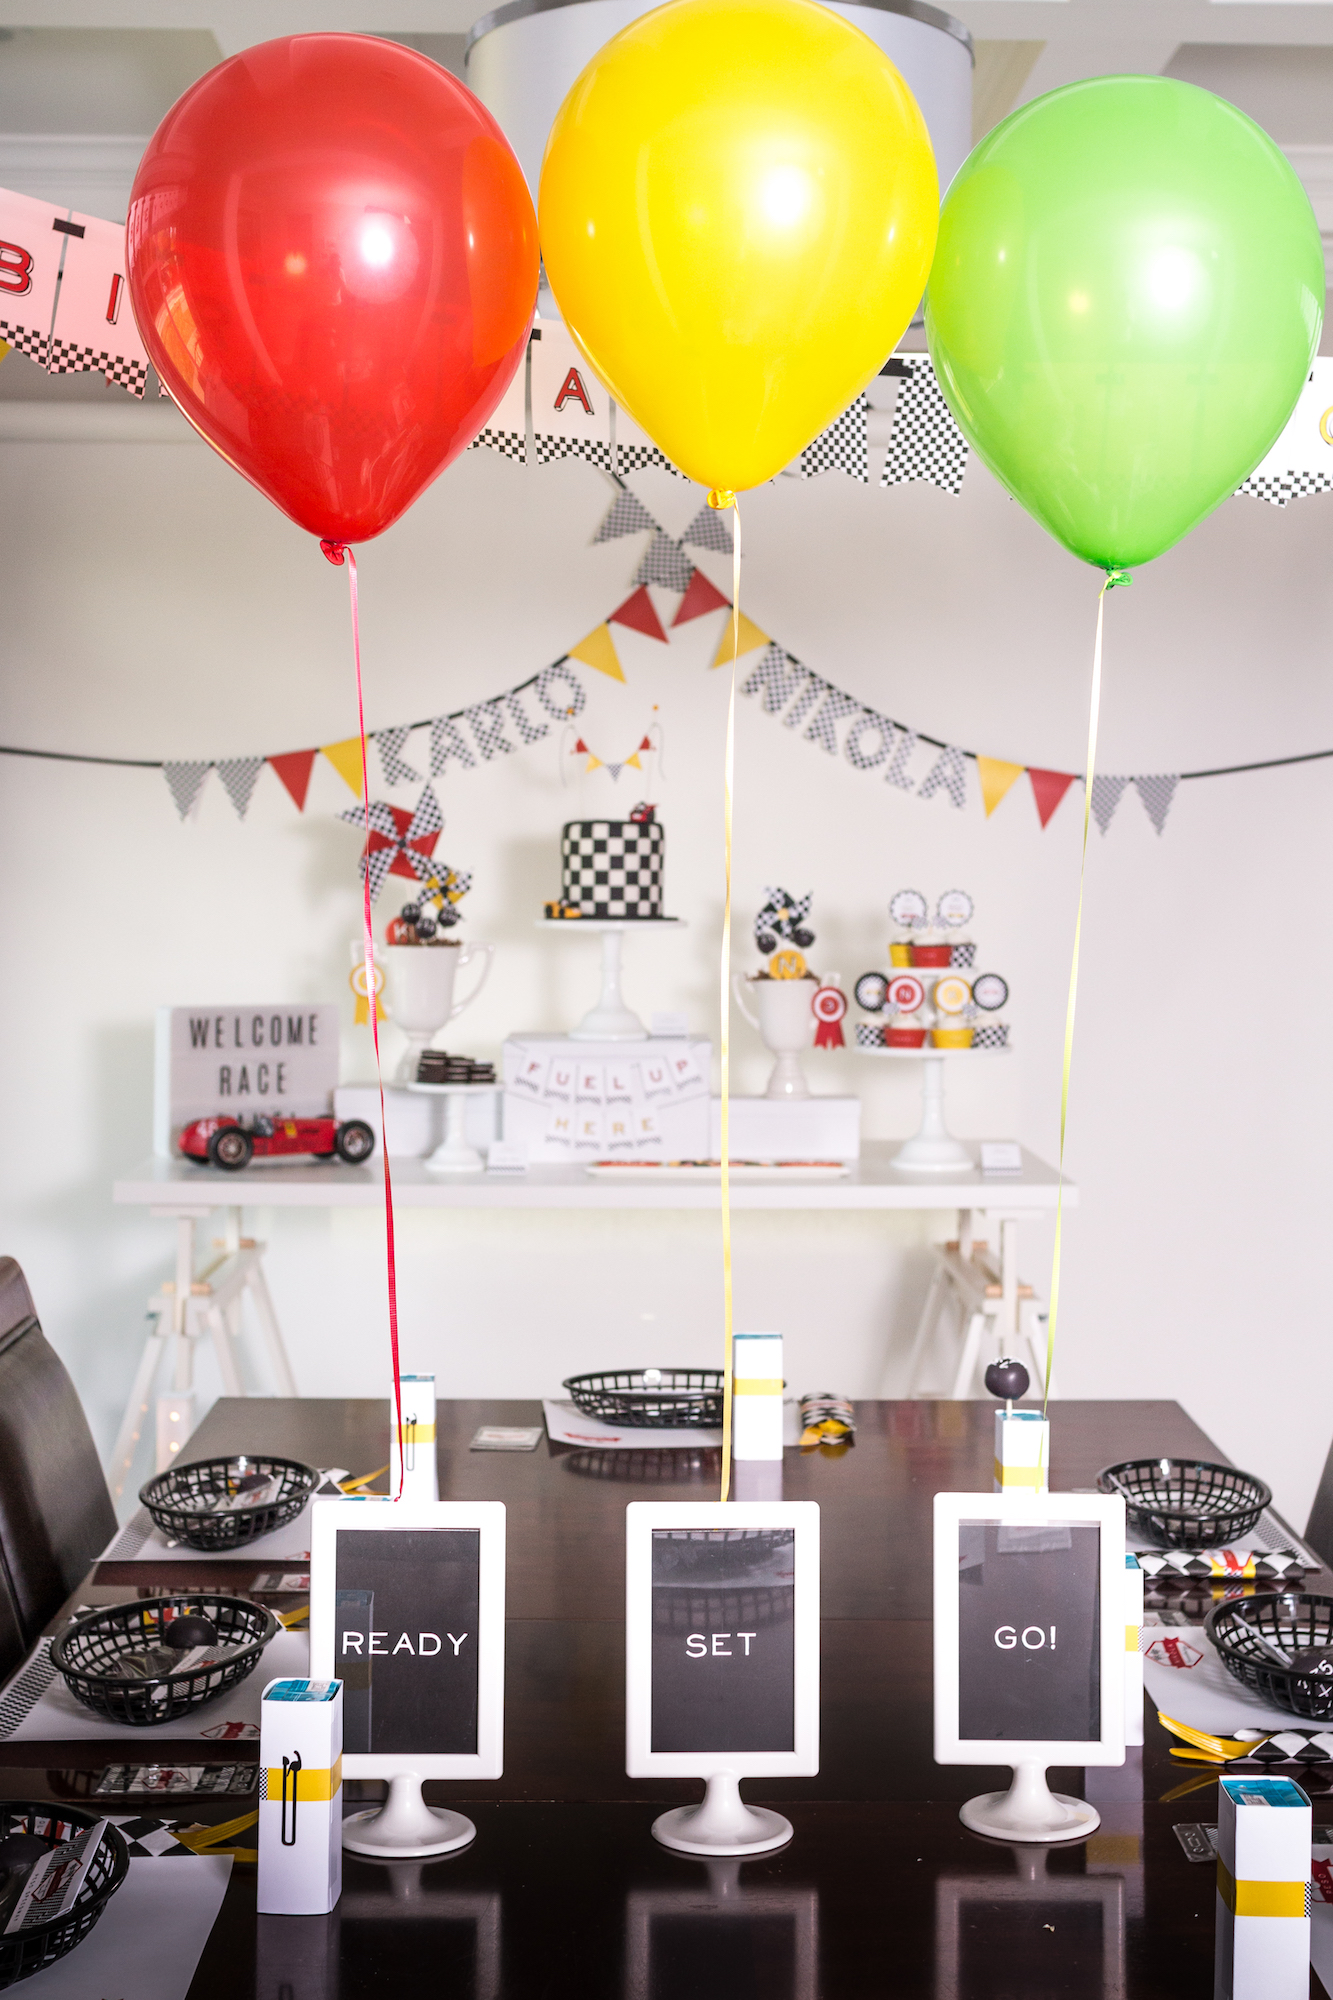 Race car party ready set go frames | Black Twine | Tania's Design Studio